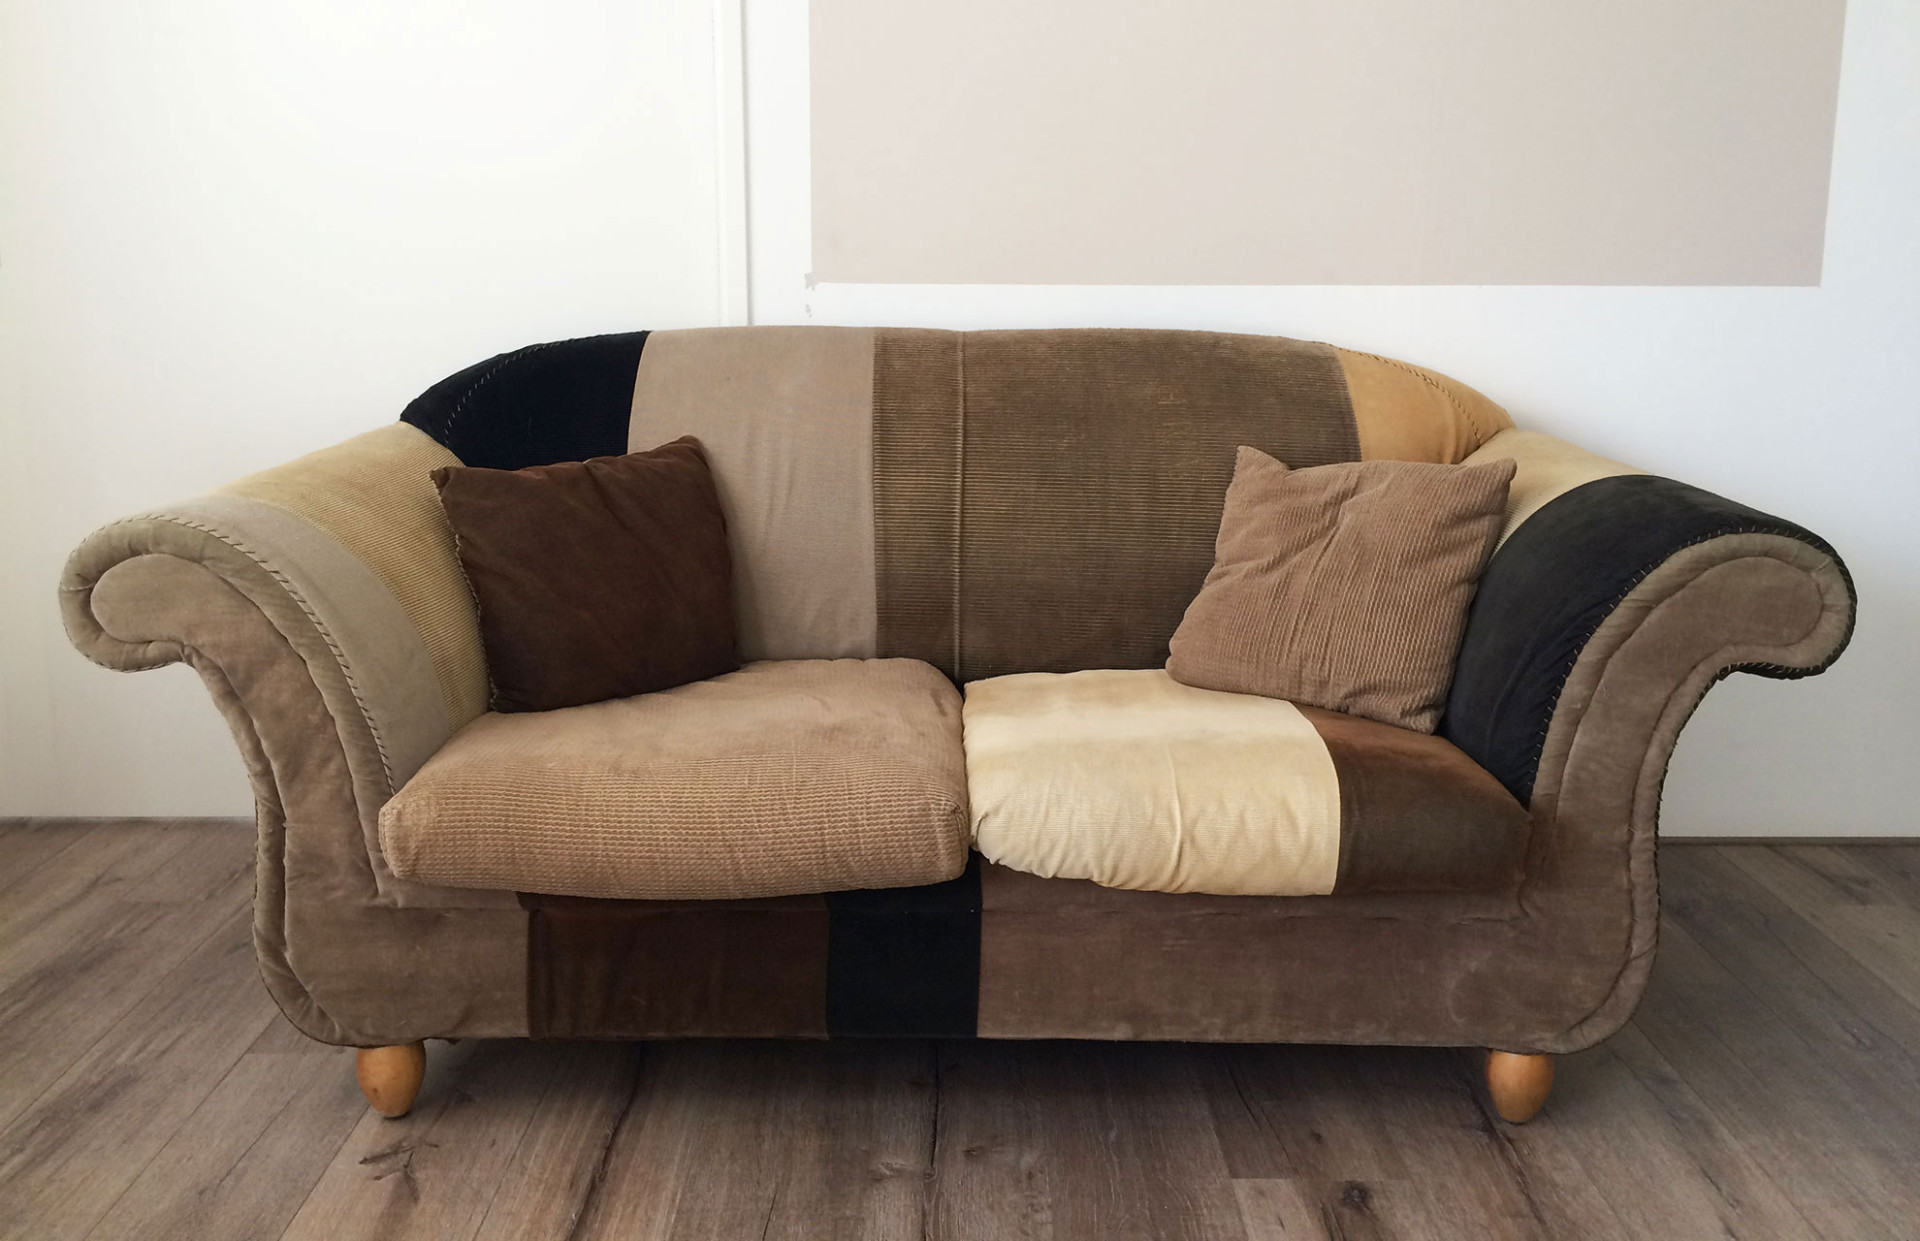 reupholstered_couch_sofa_annienke